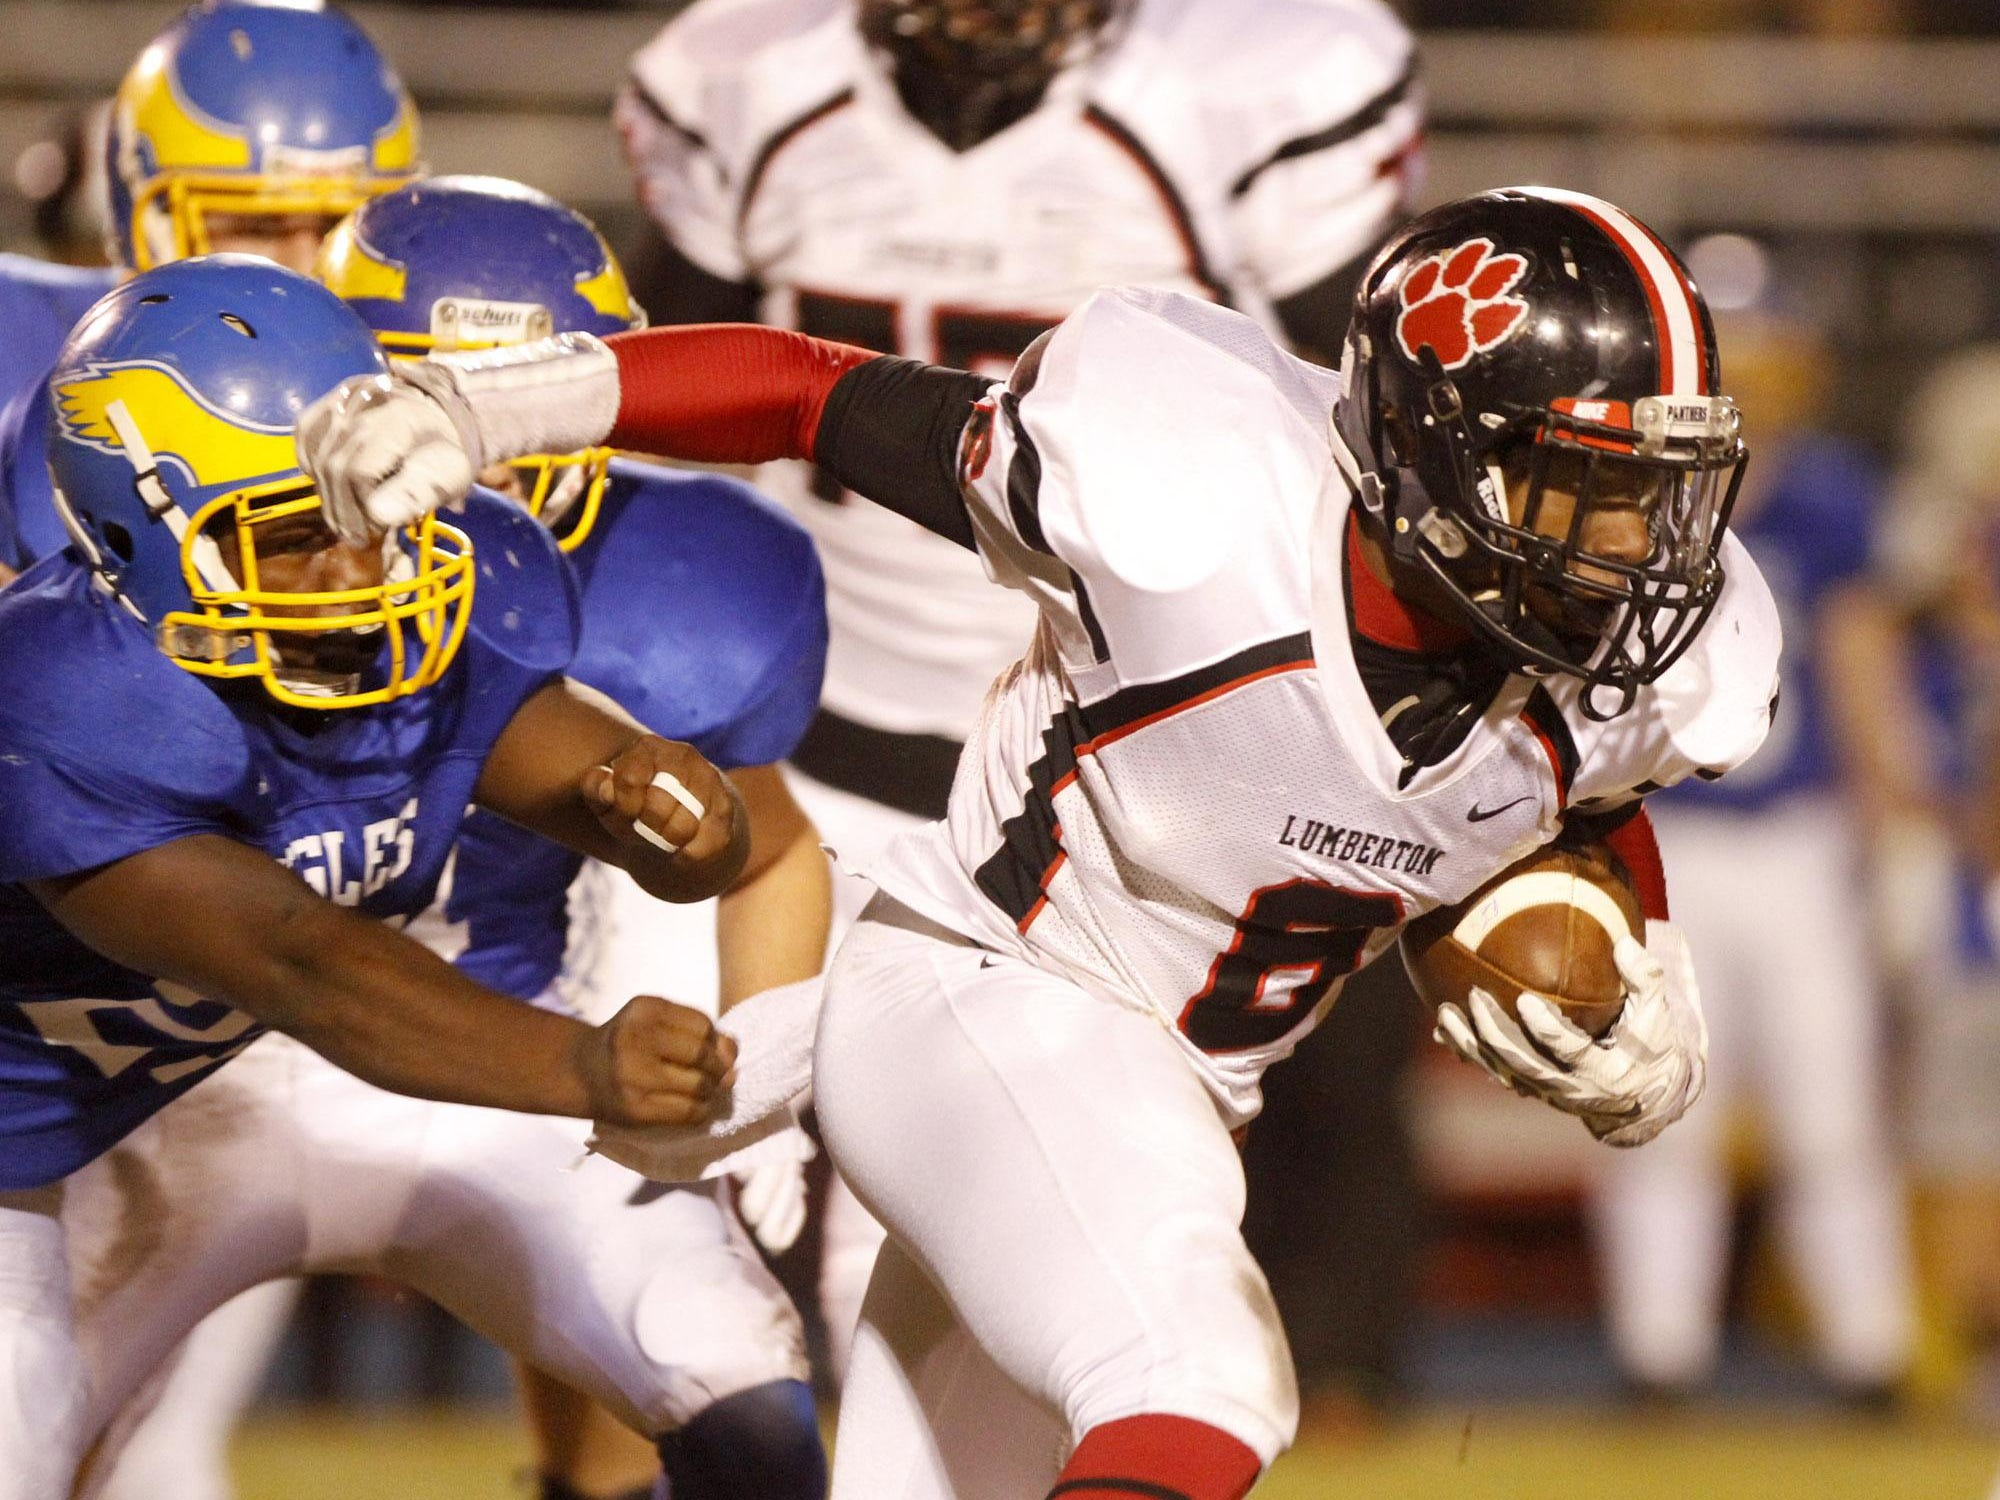 Lumberton running back Daylon Burks runs out of the grasp of Resurrection's Cearly Parker IV, Friday night in the Class 1A South State Championship.